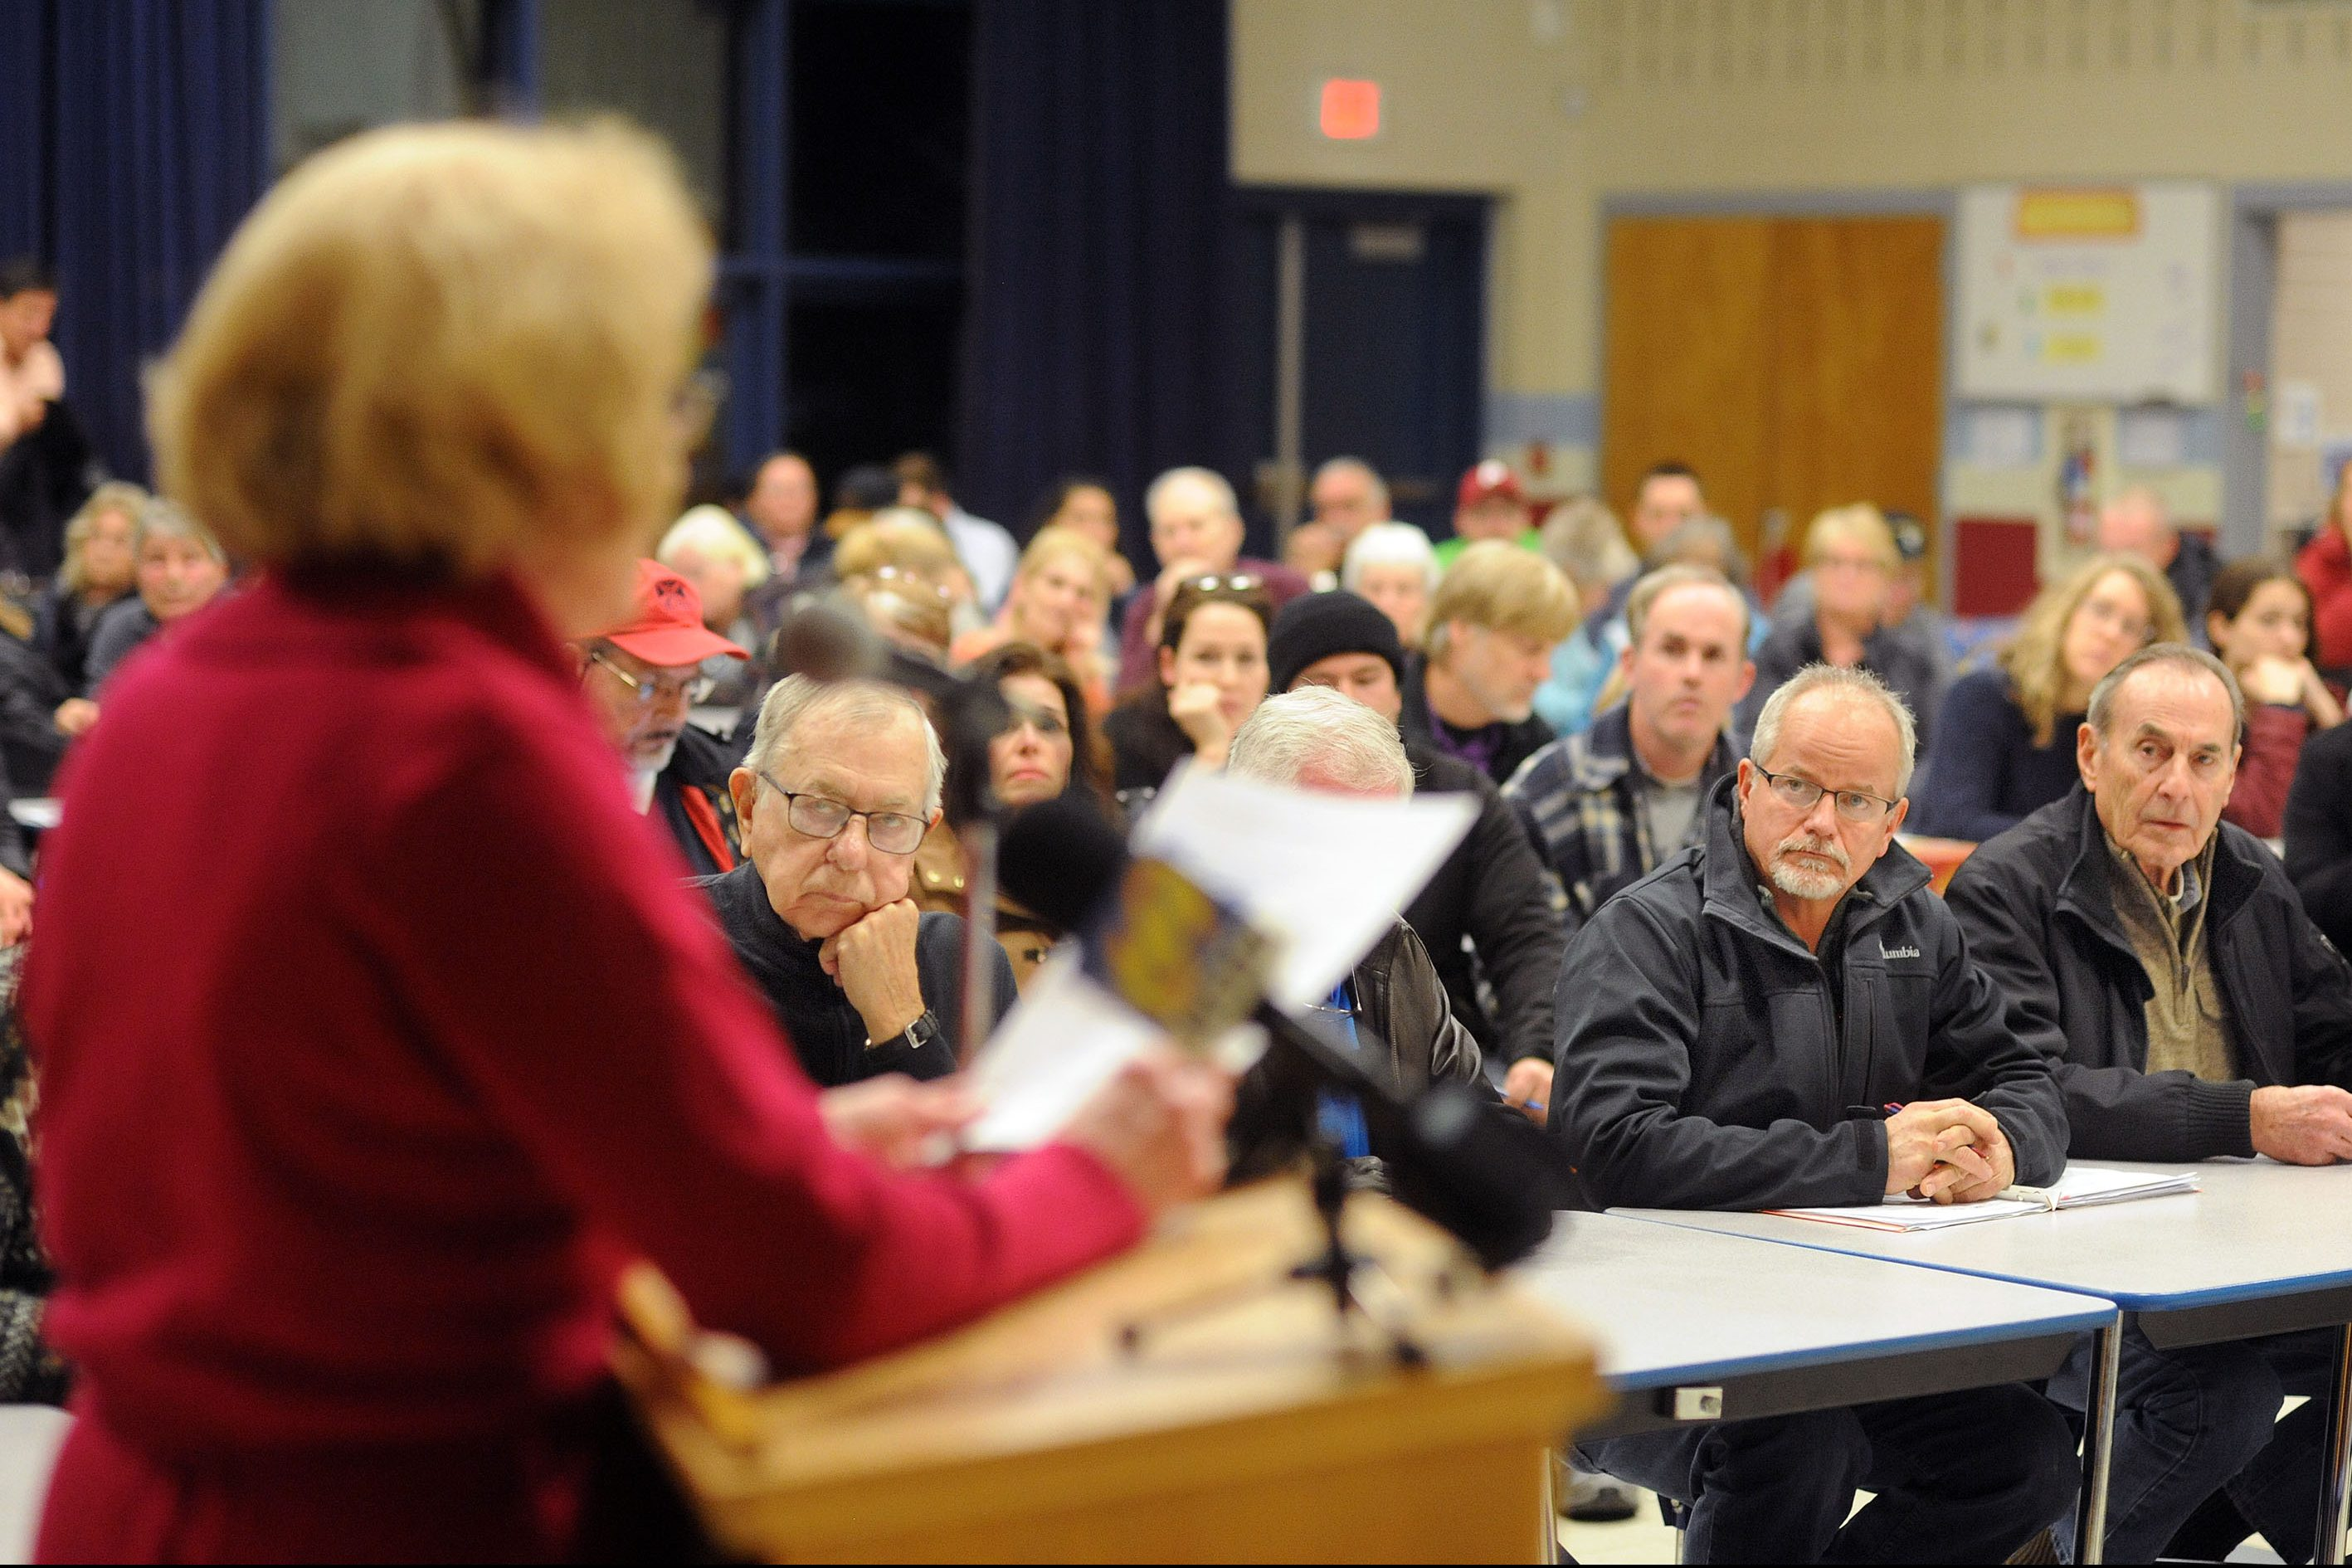 Upper Pipeline Bucks Hearing Residents Lob Complaints Dep At